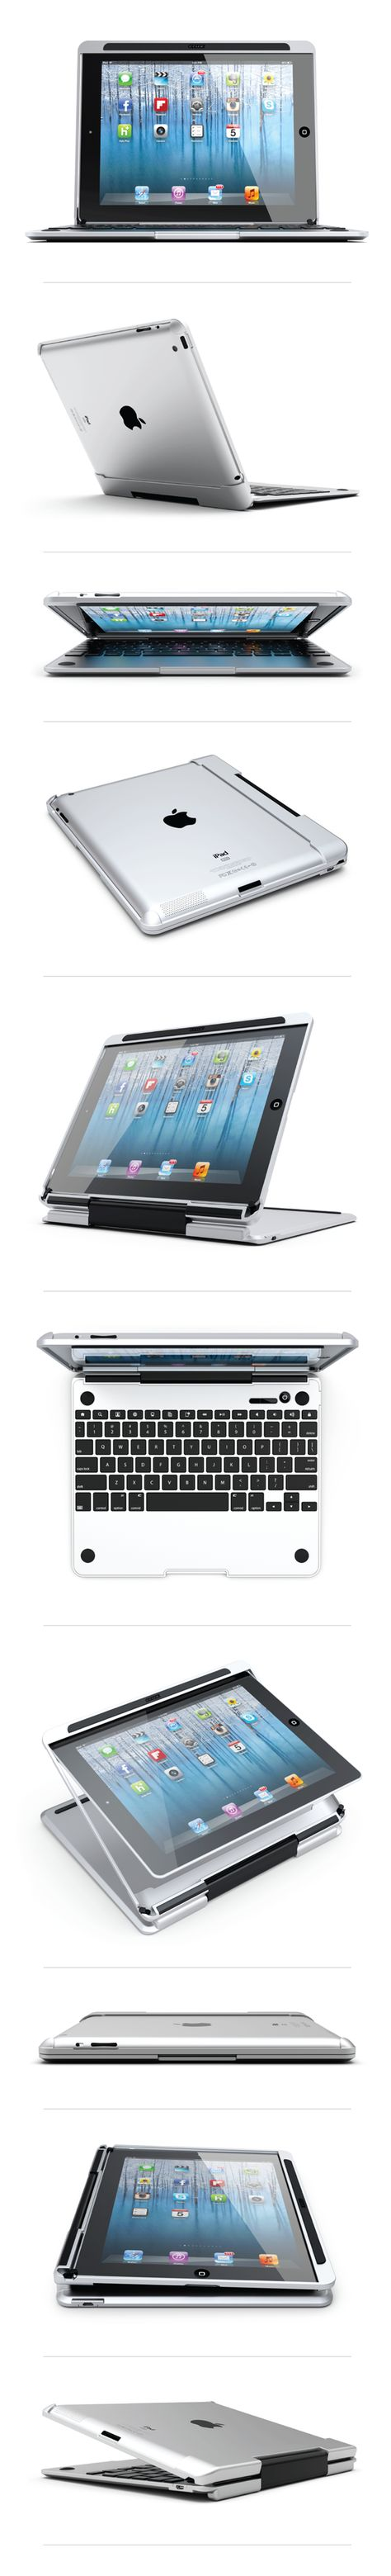 Turn Your iPad Into a Laptop With the Cruxskunk Keyboard Case